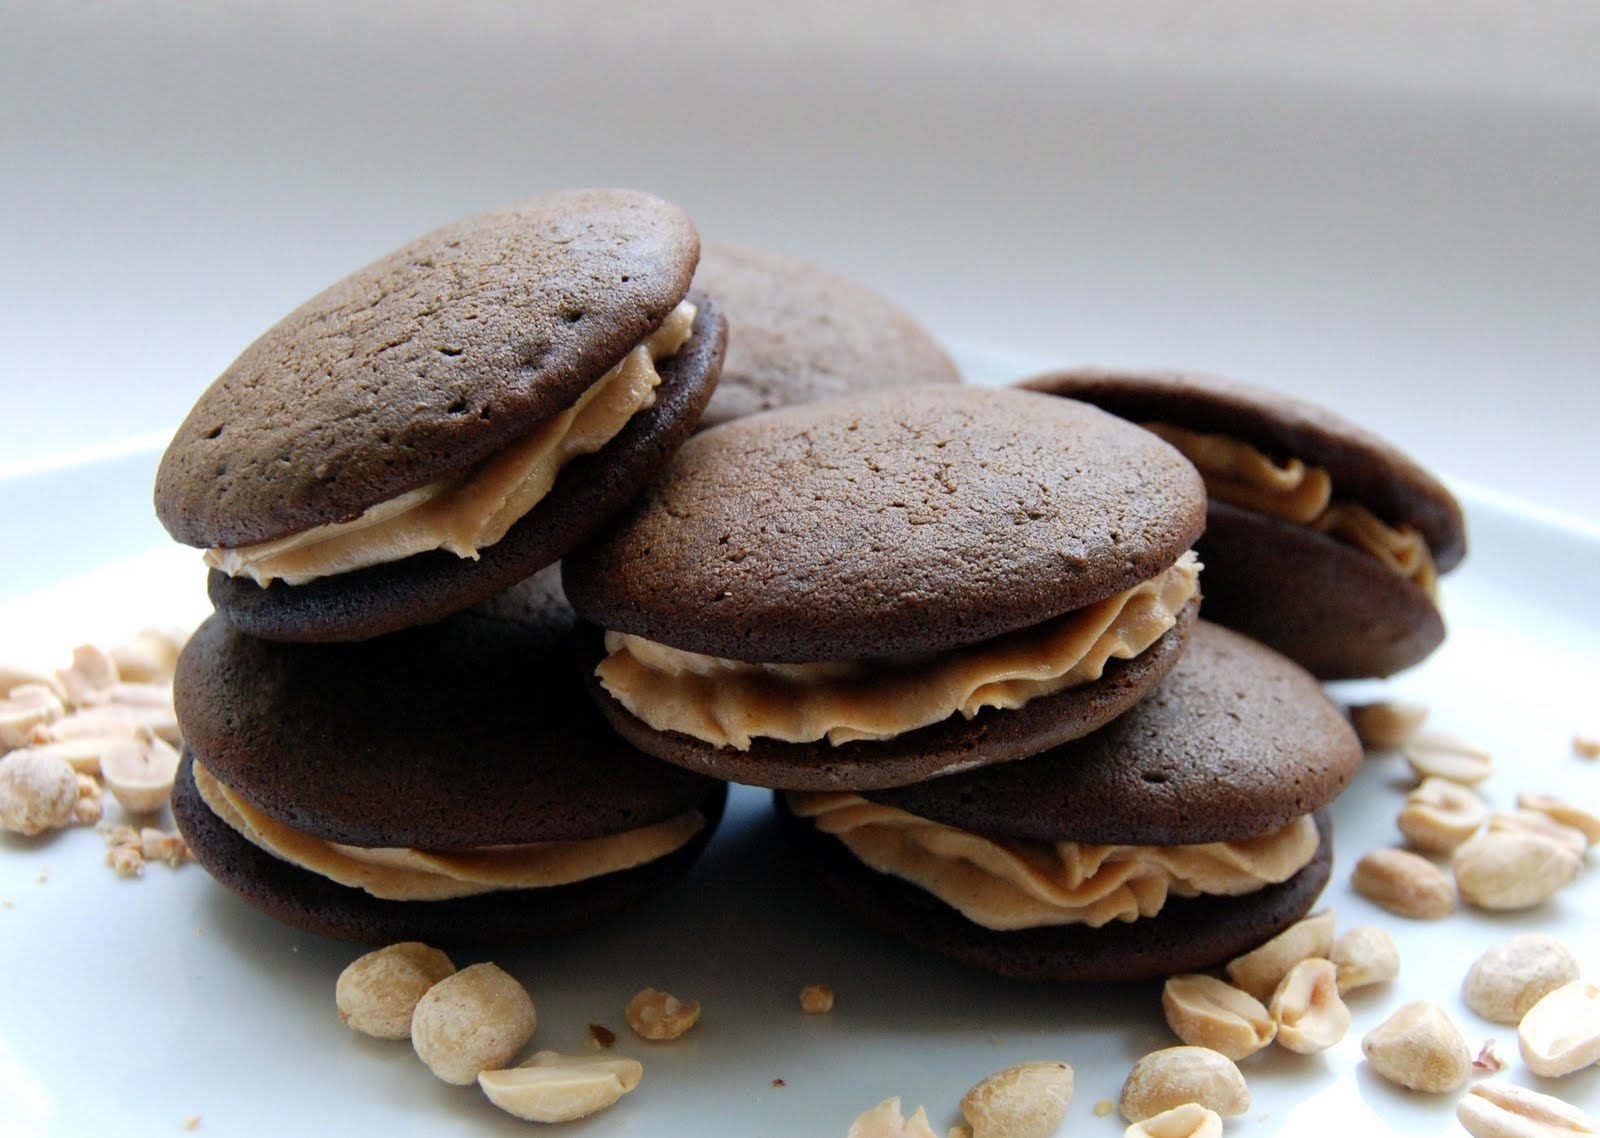 The Broken Oven: Chocolate & Peanut Butter Gobs